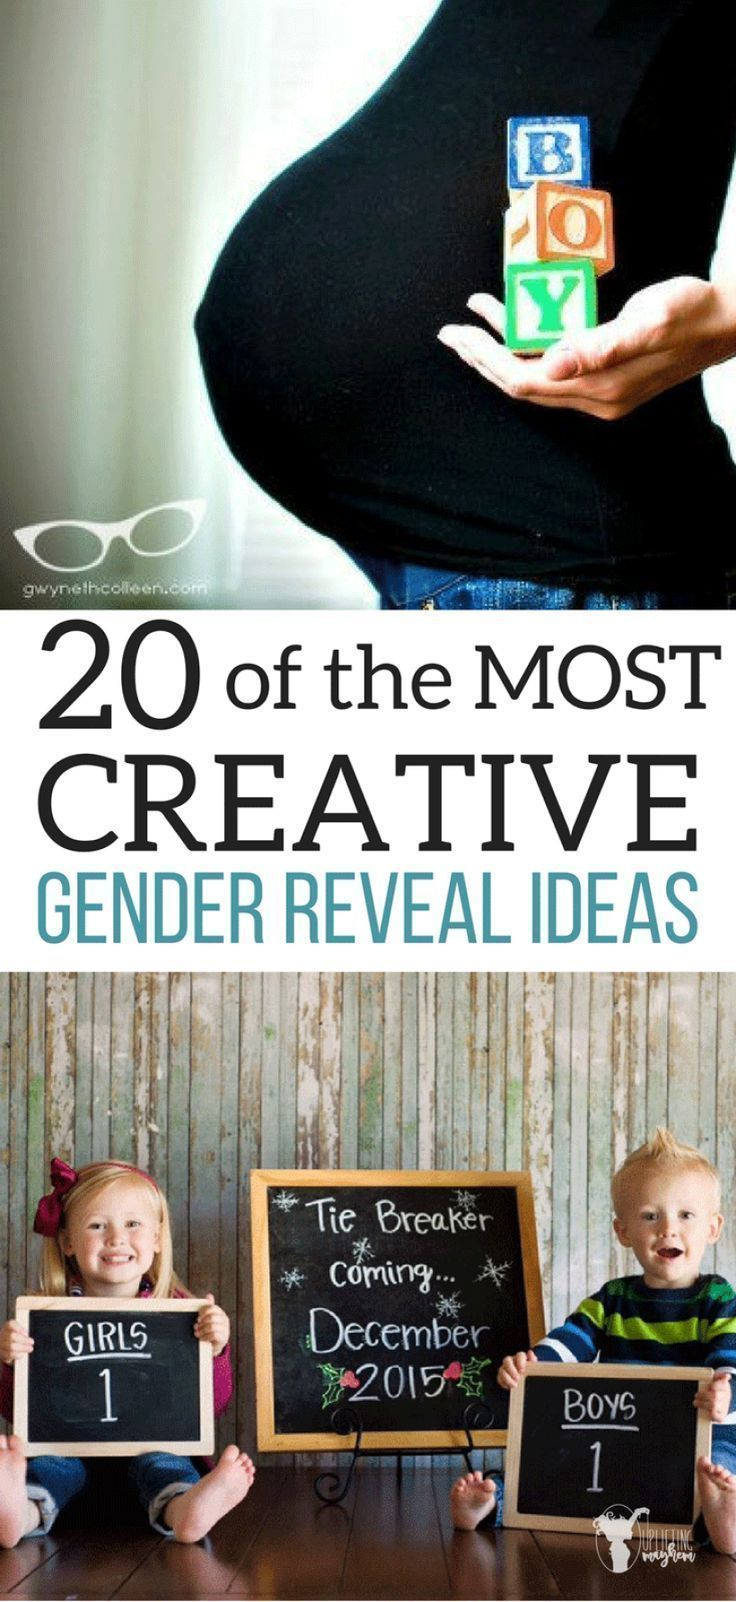 The Most Creative Gender Reveal Ideas Creative Gender Reveals Baby Gender Reveal Reveal Ideas